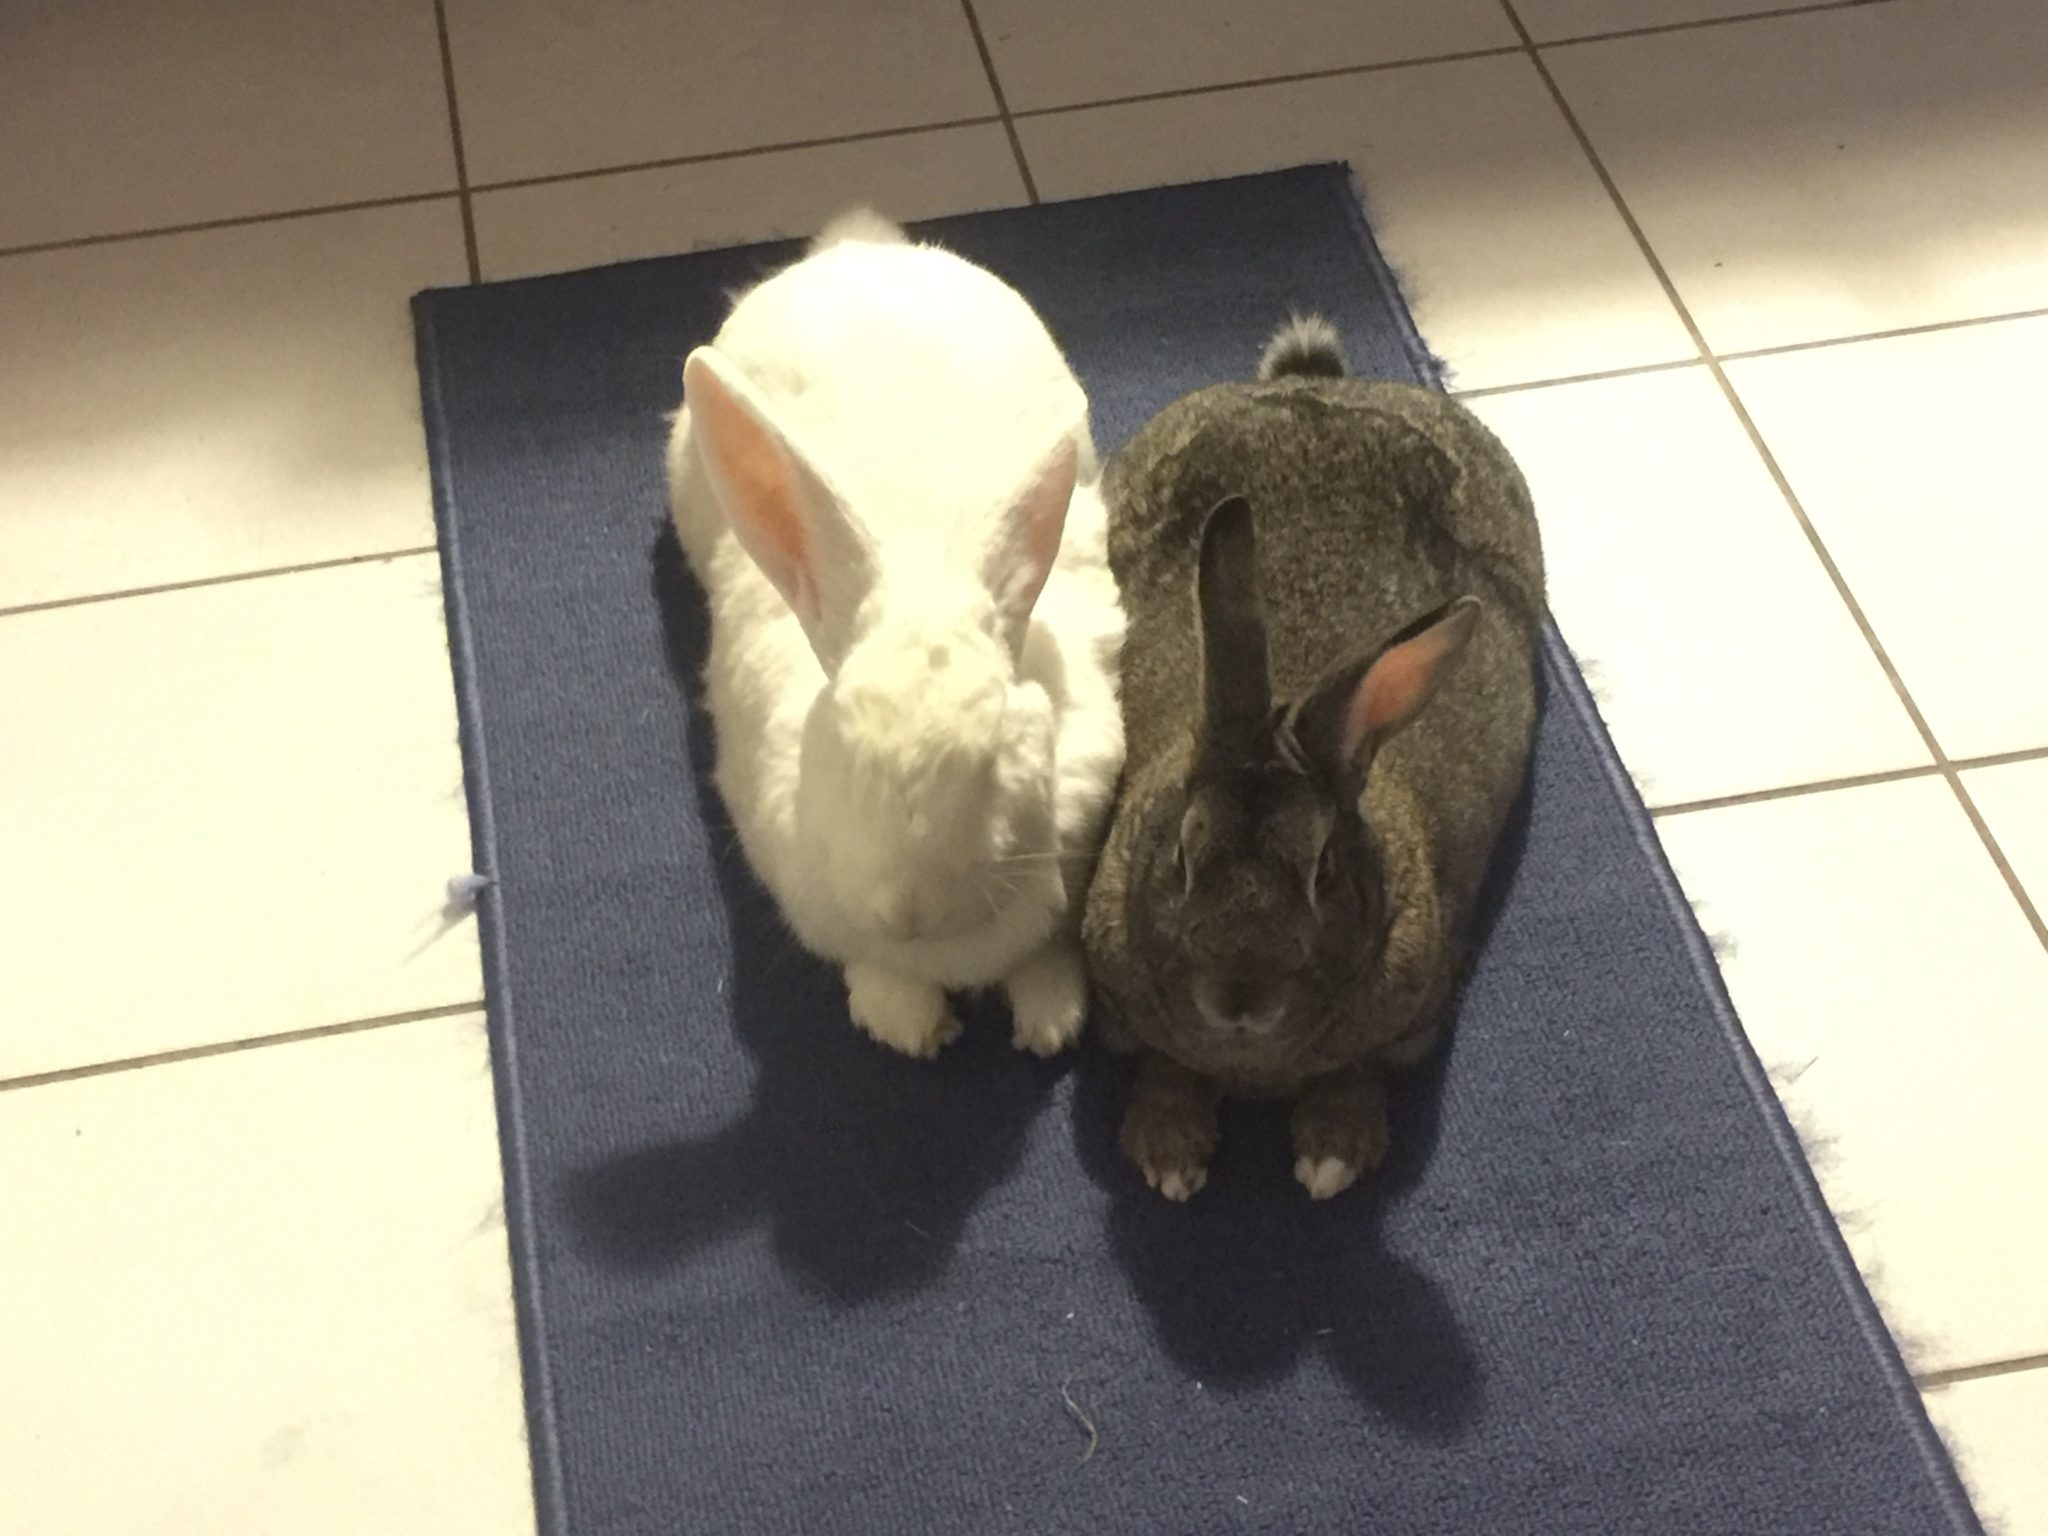 The story of Petey and Gracie, as told by their adopter